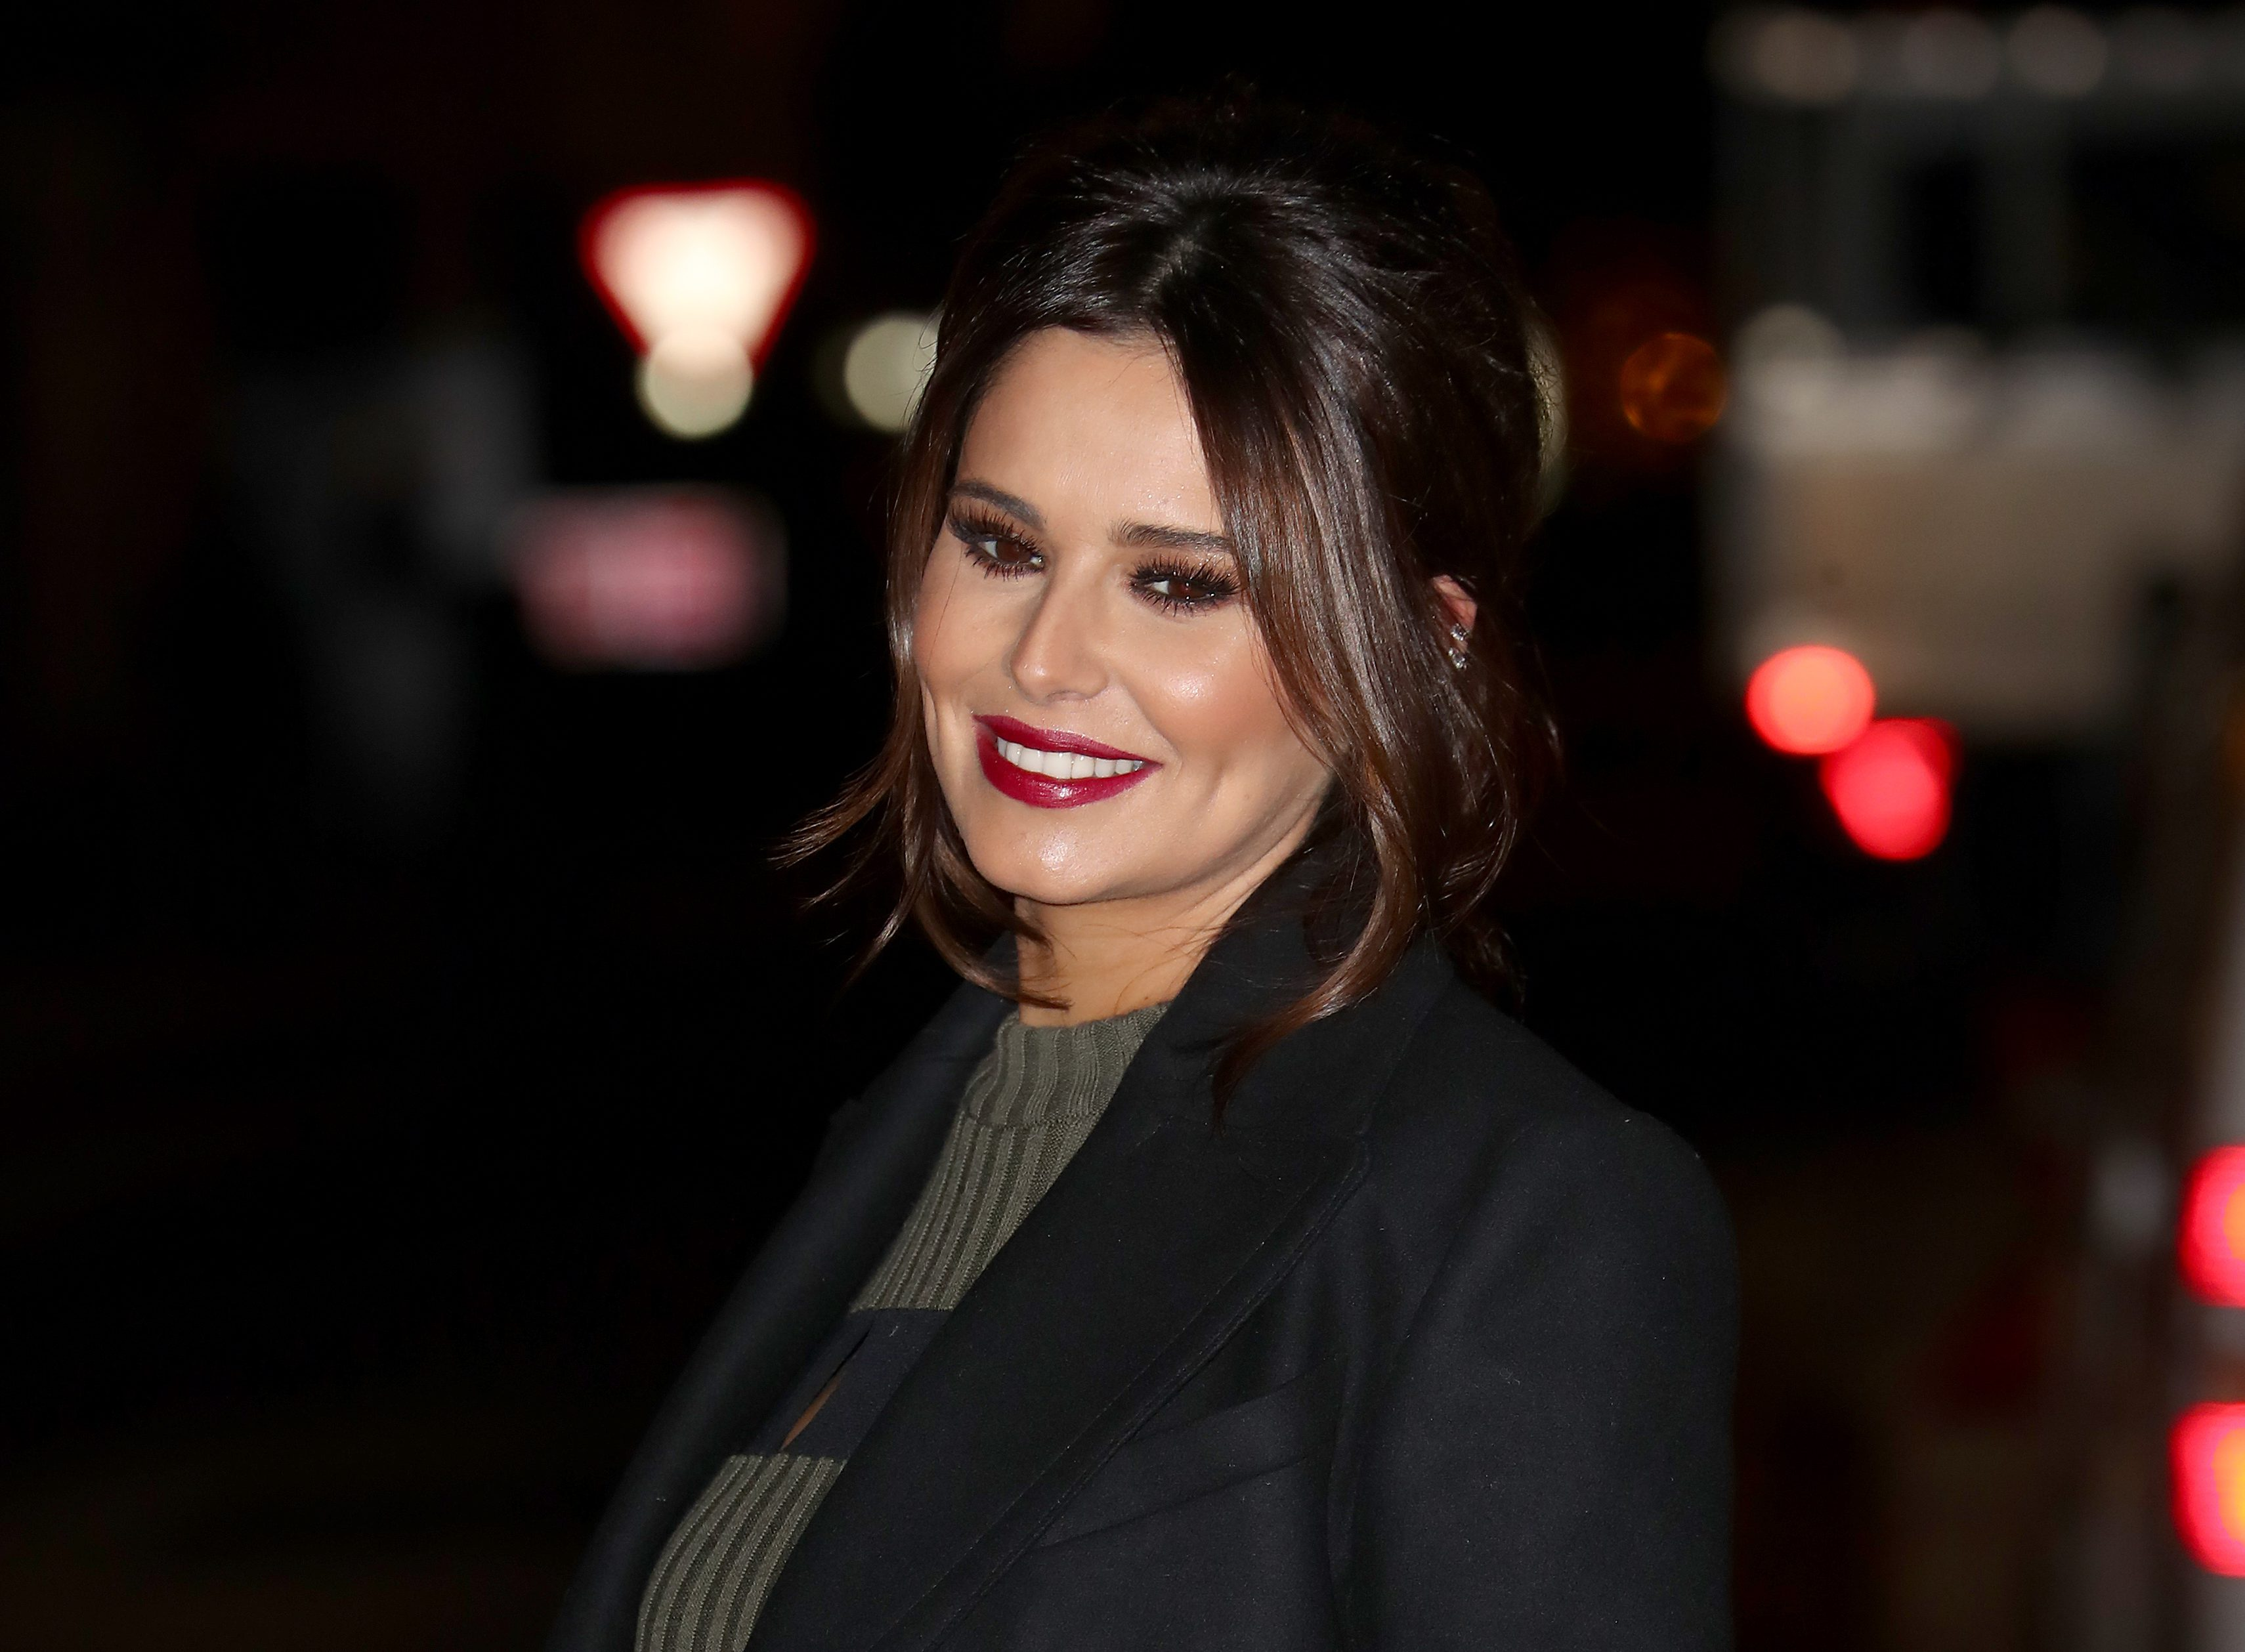 Is Cheryl planning on swapping music for the lucrative mummy market?